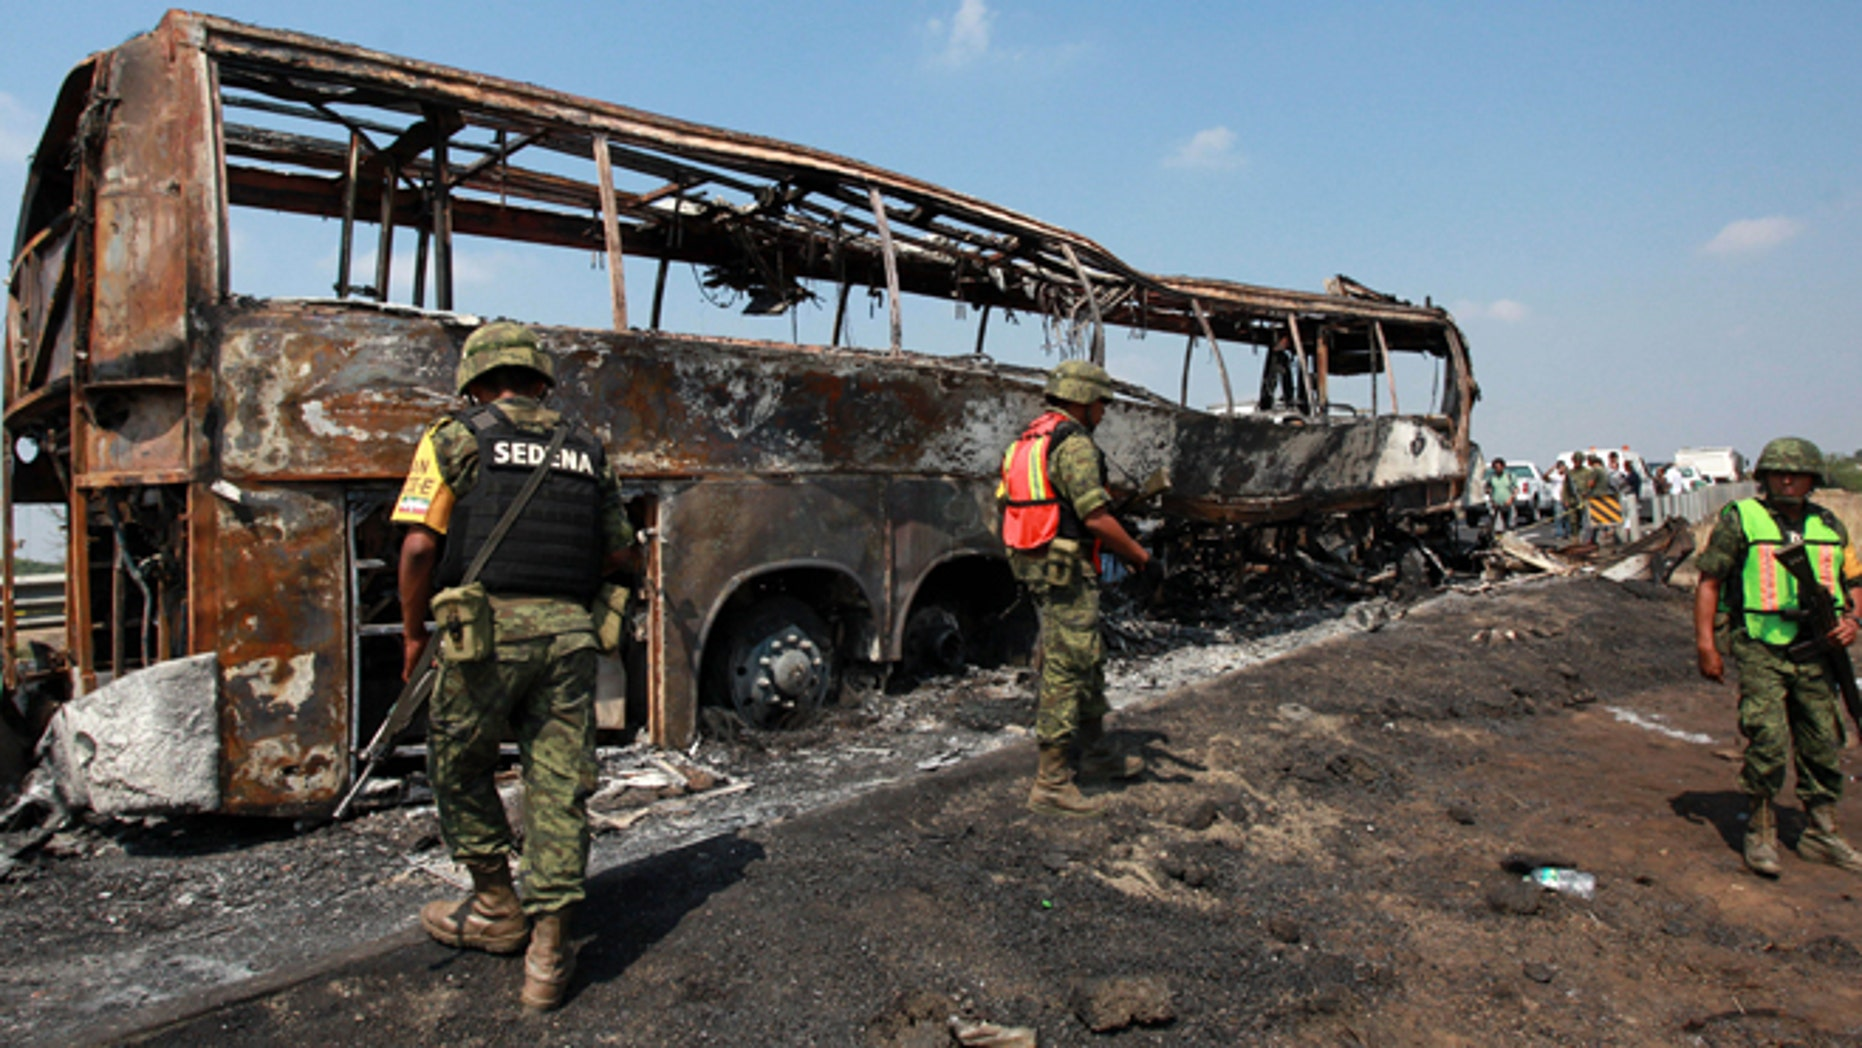 April 13, 2014: Soldiers guard the site where a passenger bus slammed into a broken-down truck and burst into flames near the town of Ciudad Isla in the Gulf state of Veracruz, Mexico. Dozens of people traveling on the bus to Mexico City burned to death inside the bus.